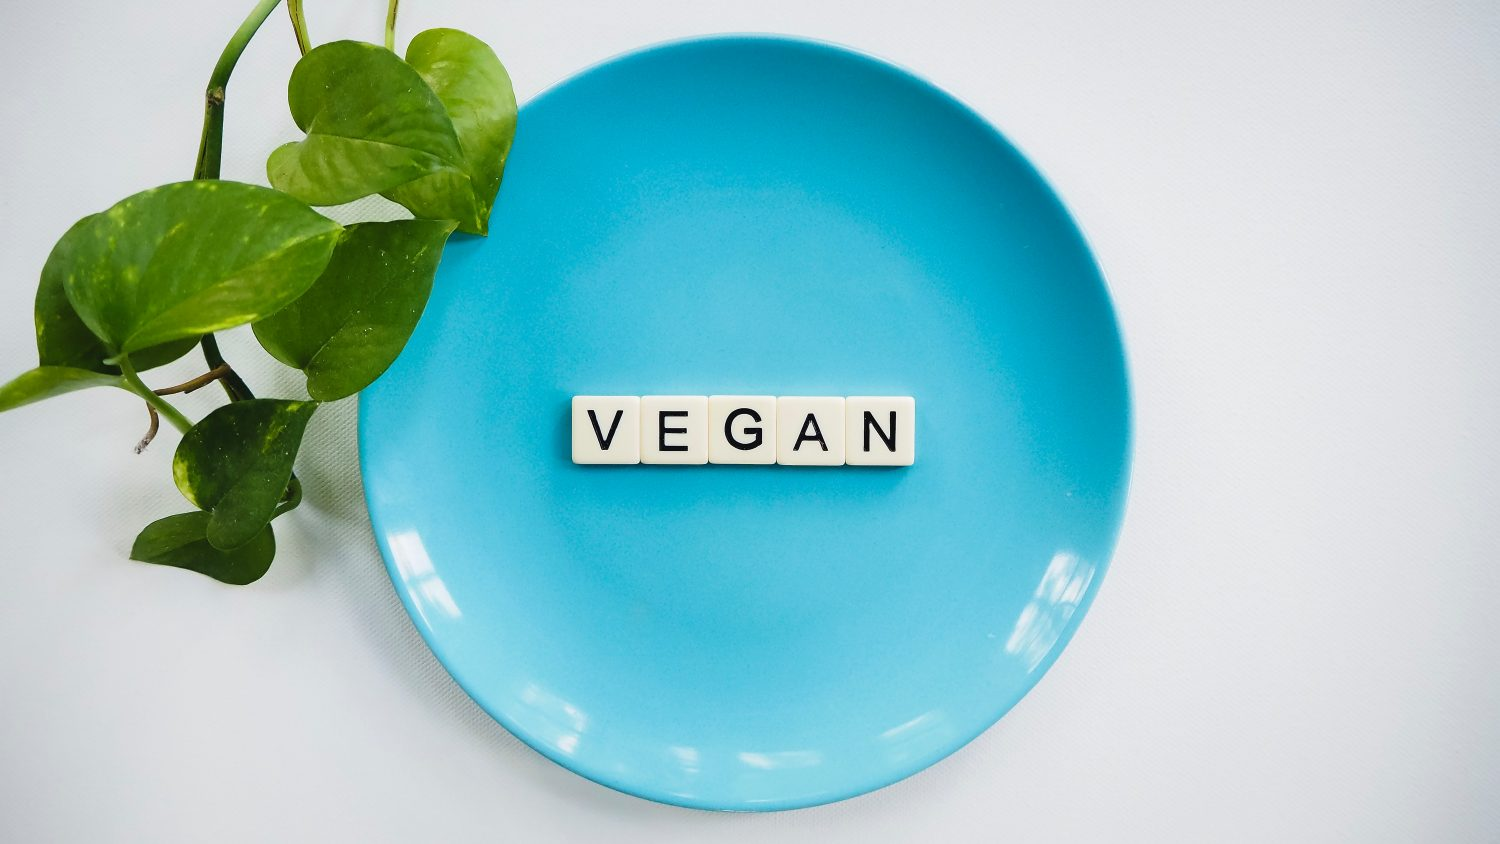 vegan liftz unsplash